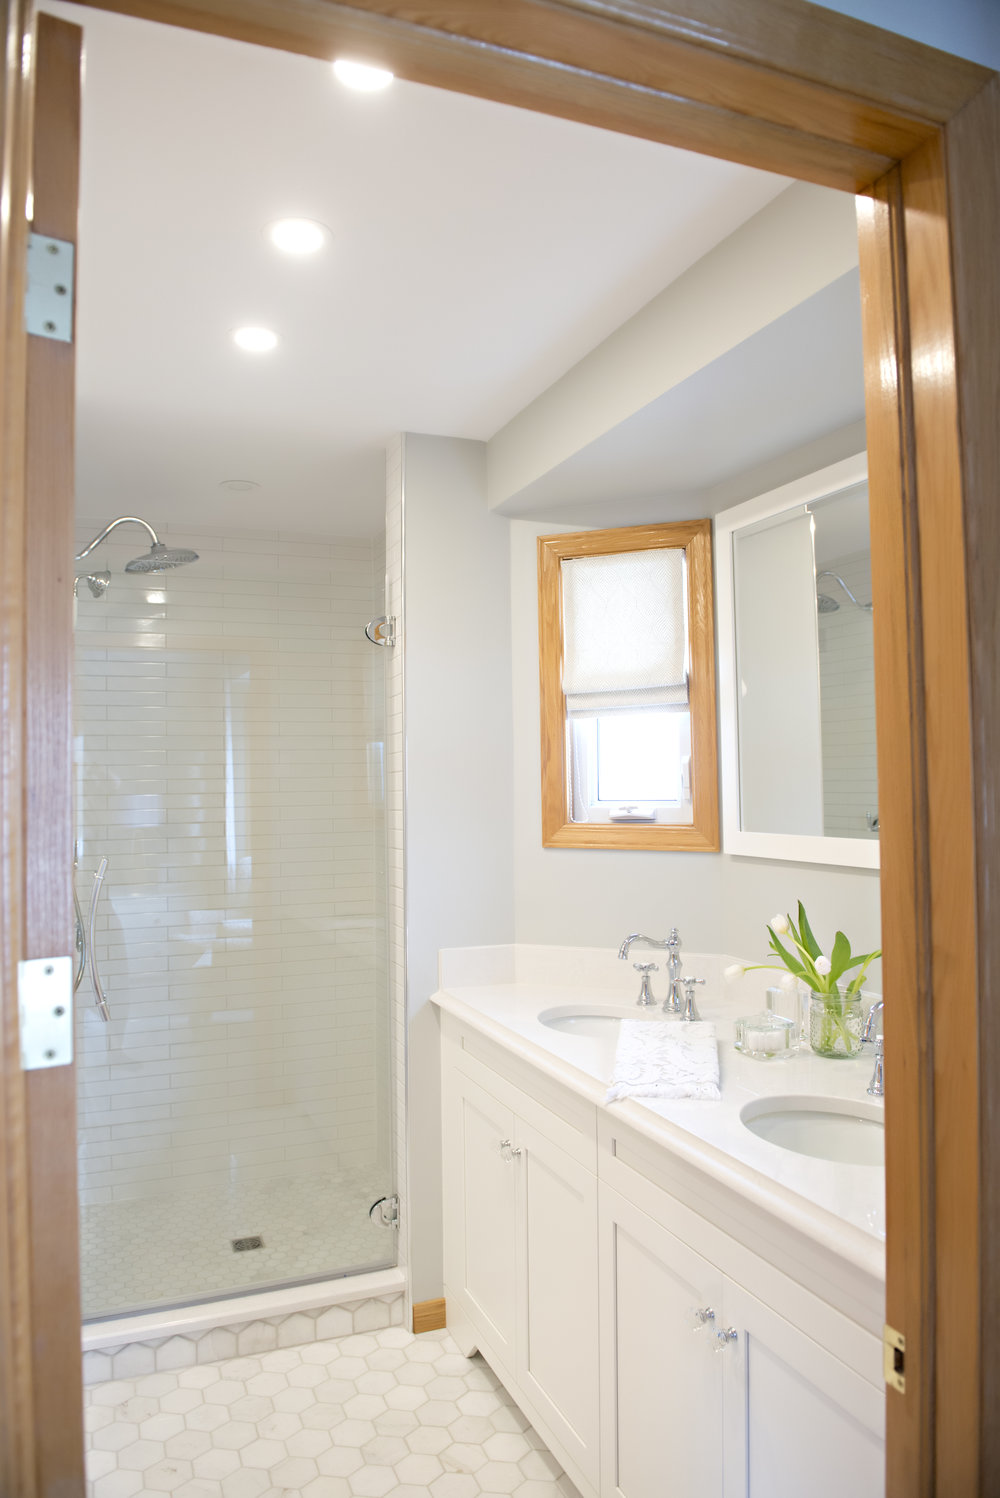 Cedar-Brae-Project-Bathroom-Double-Sink